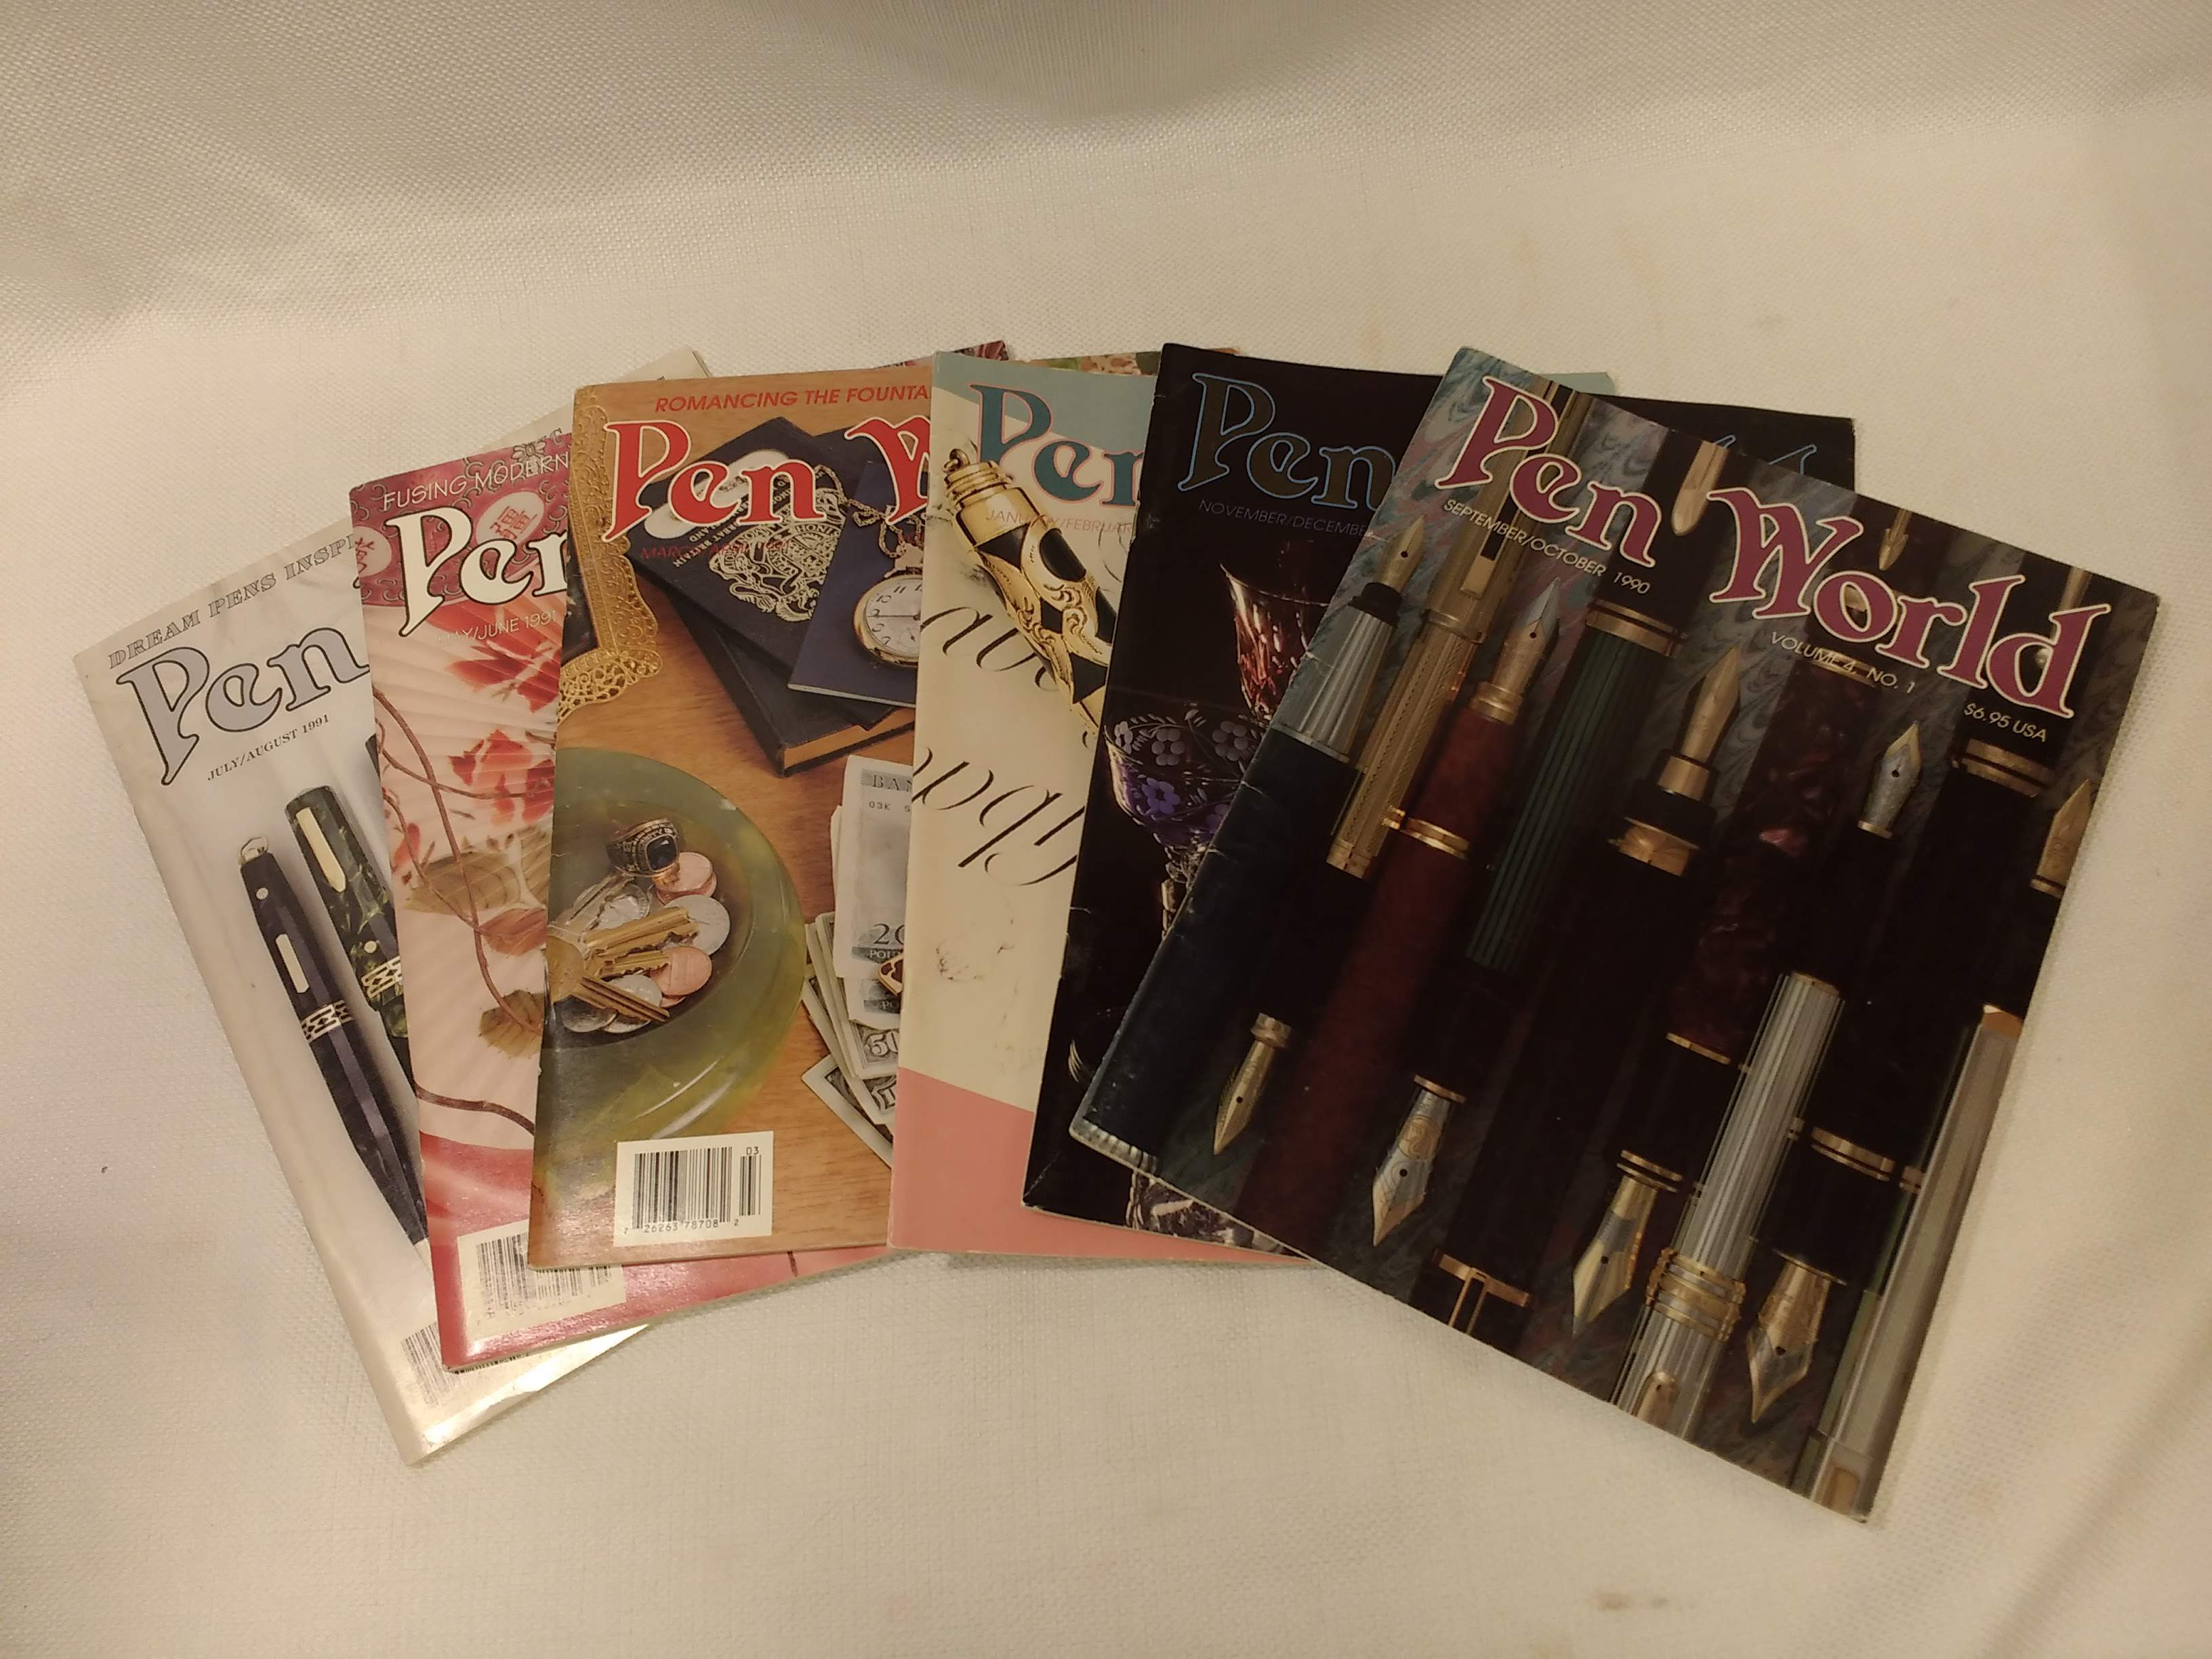 Pen World Magazine: Vol. Four, complete in six issues (Sept. 1990 - Aug. 1991), Olson, Nancy R. [managing editor]